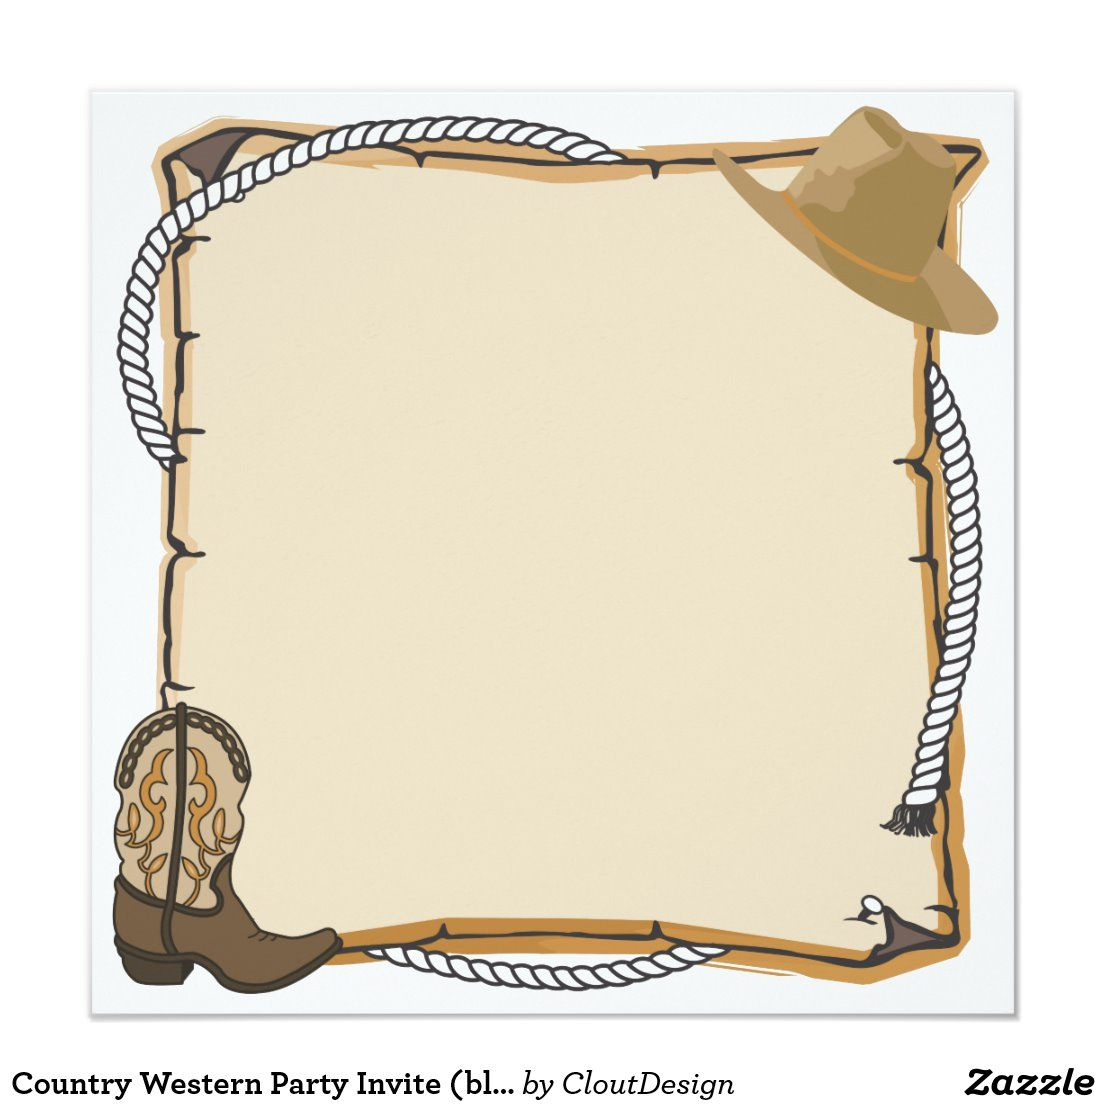 Country Western Party Invite Blank Zazzle Com In 2021 Cowboy Invitations Party Invite Template Western Parties